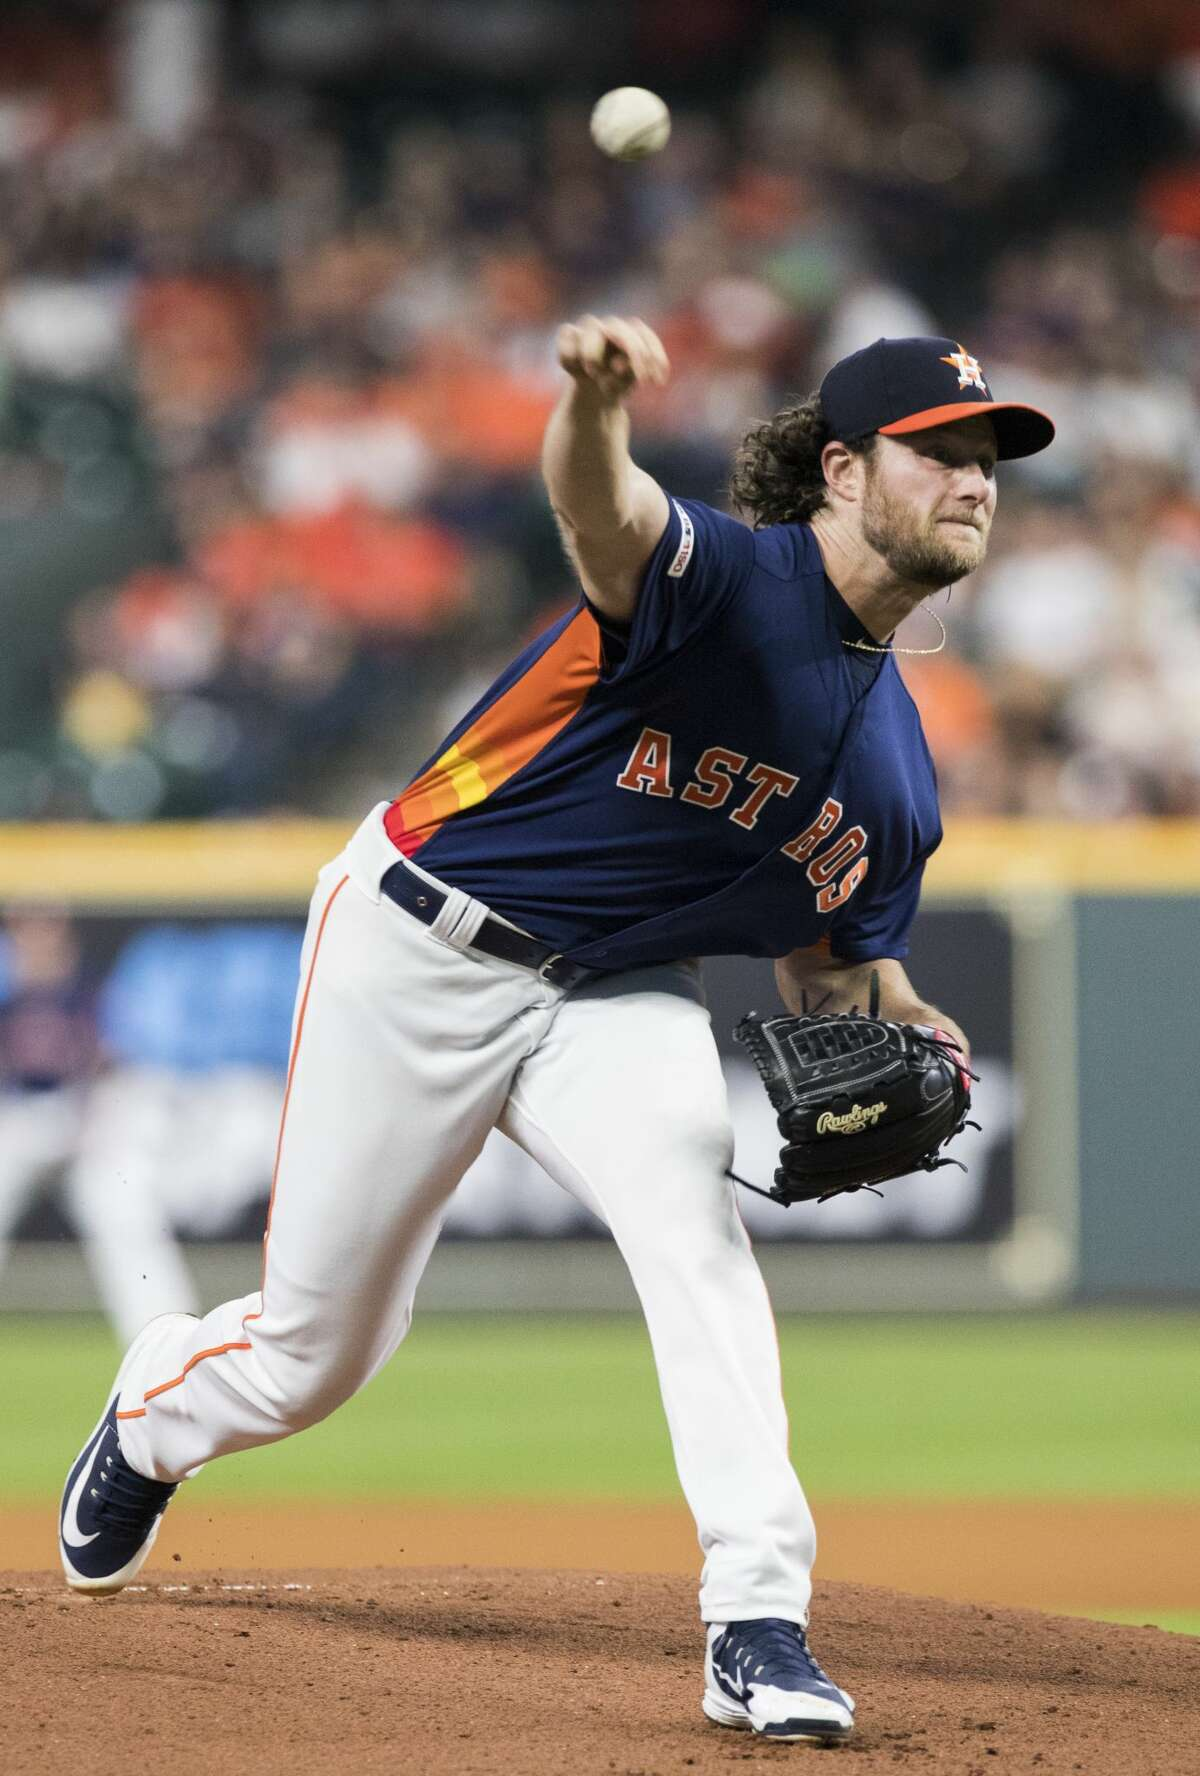 Houston Astros starting pitcher Gerrit Cole (45) opens the game pitching against the Texas Rangers at the Minute Maid Park on Saturday, May 11, 2019, in Houston.